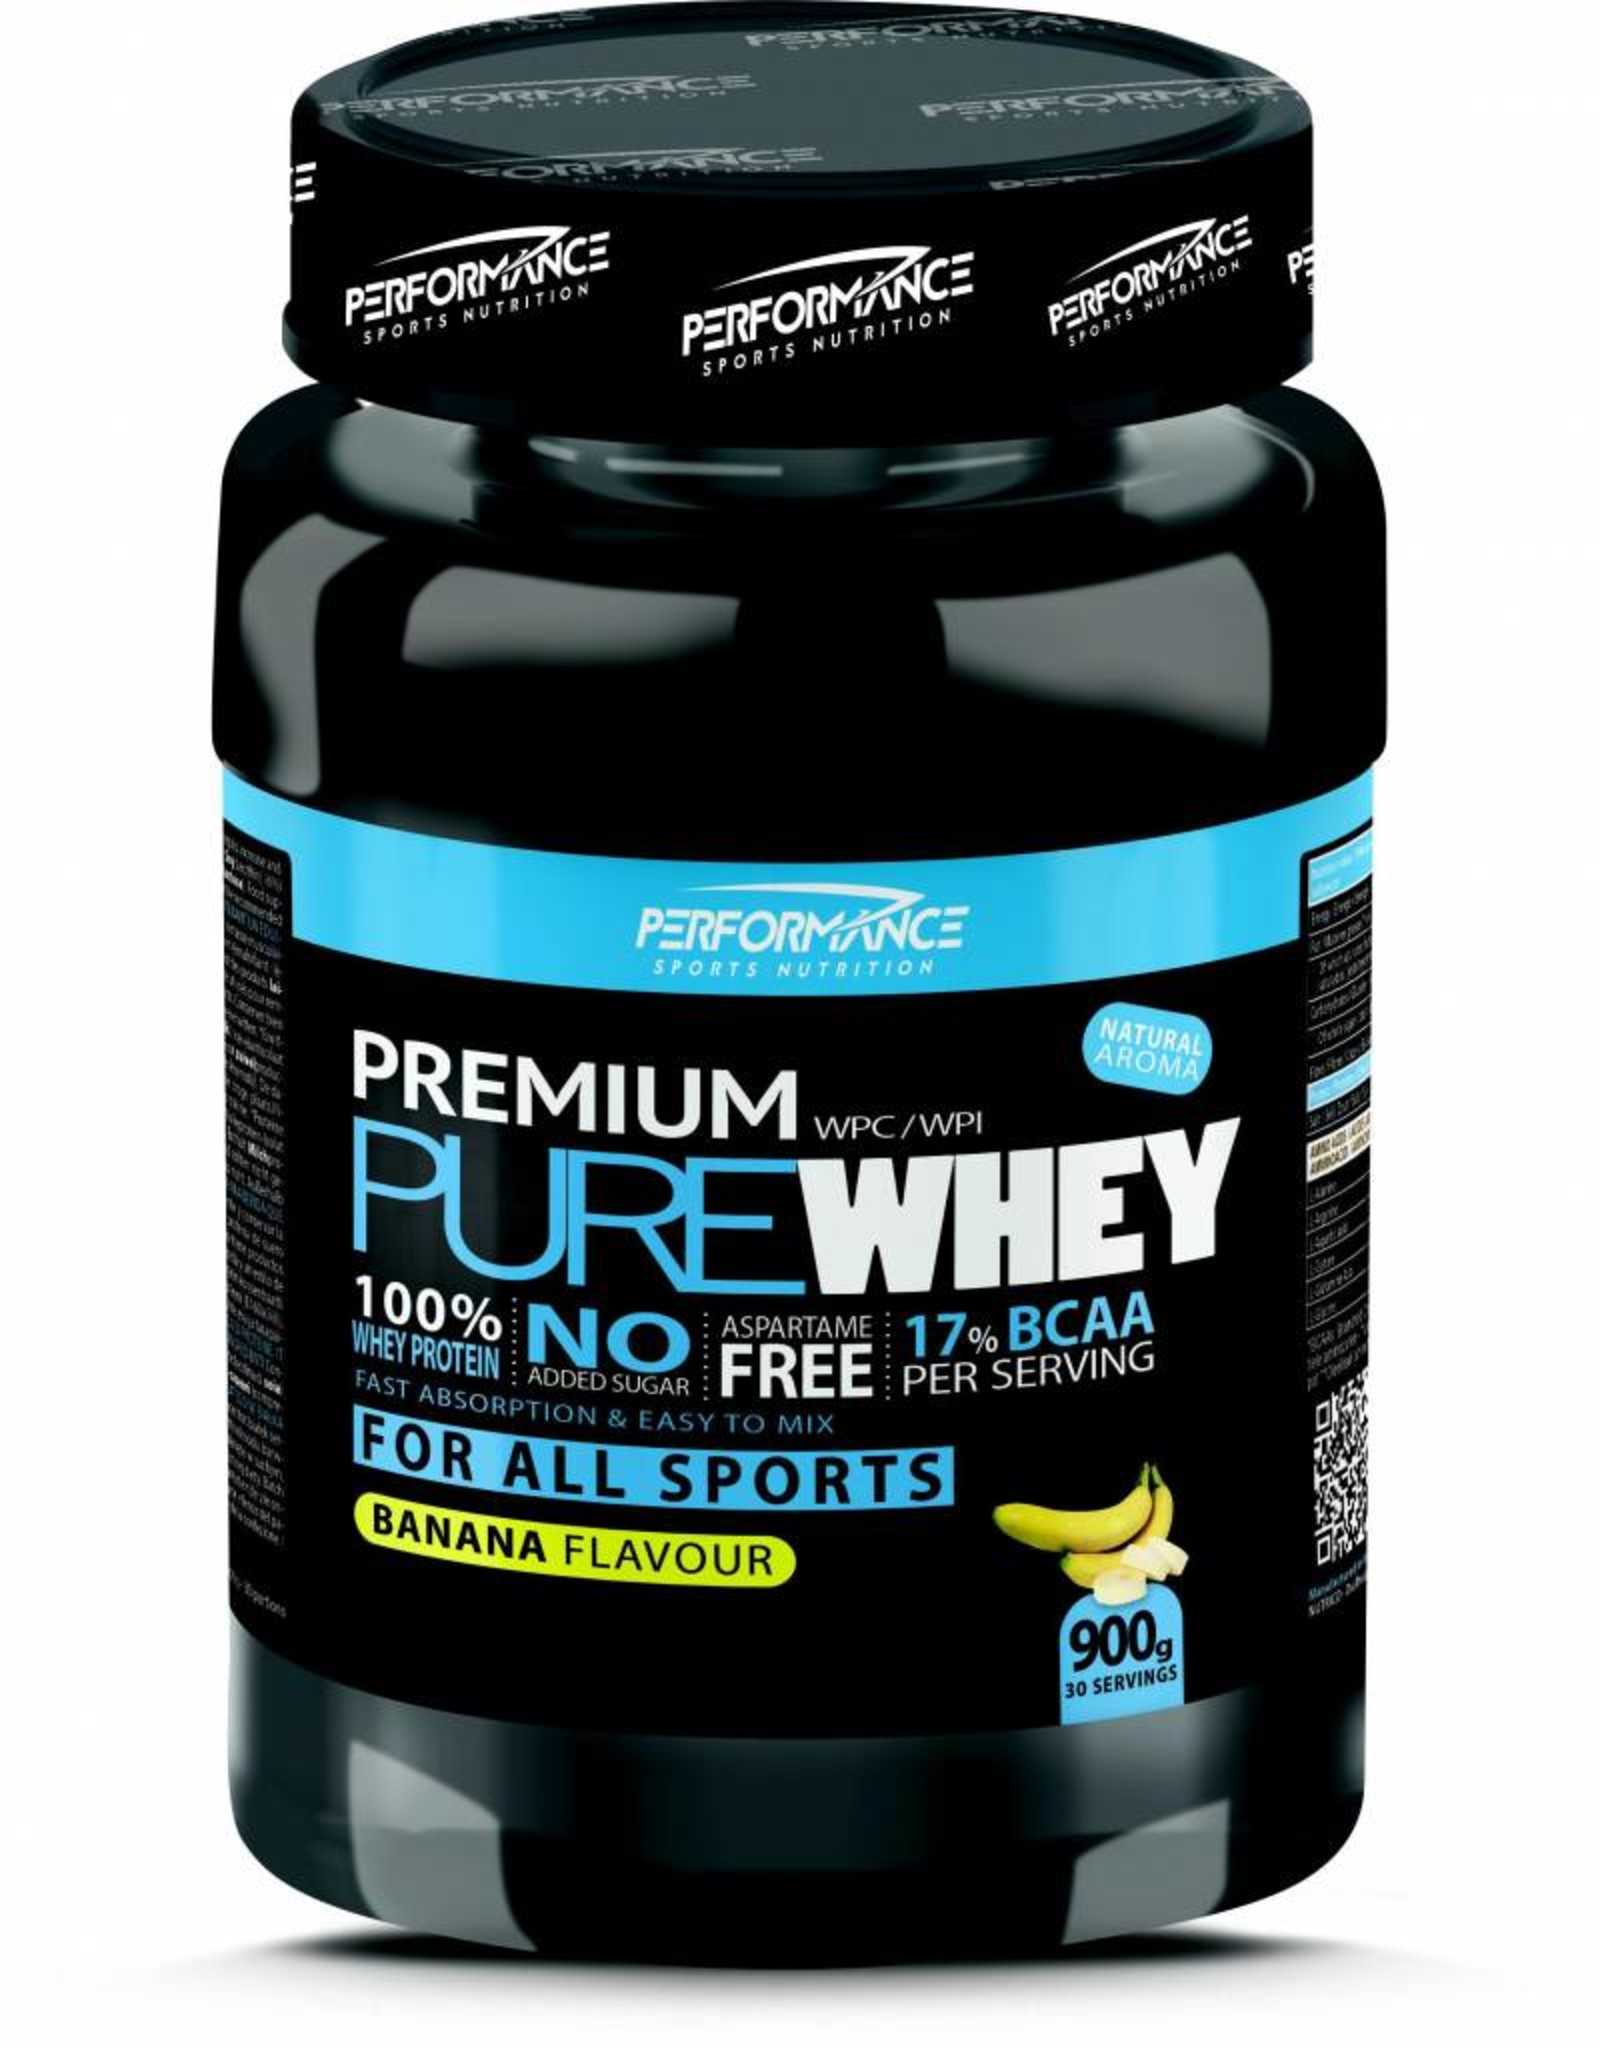 Performance Premium pure whey banana